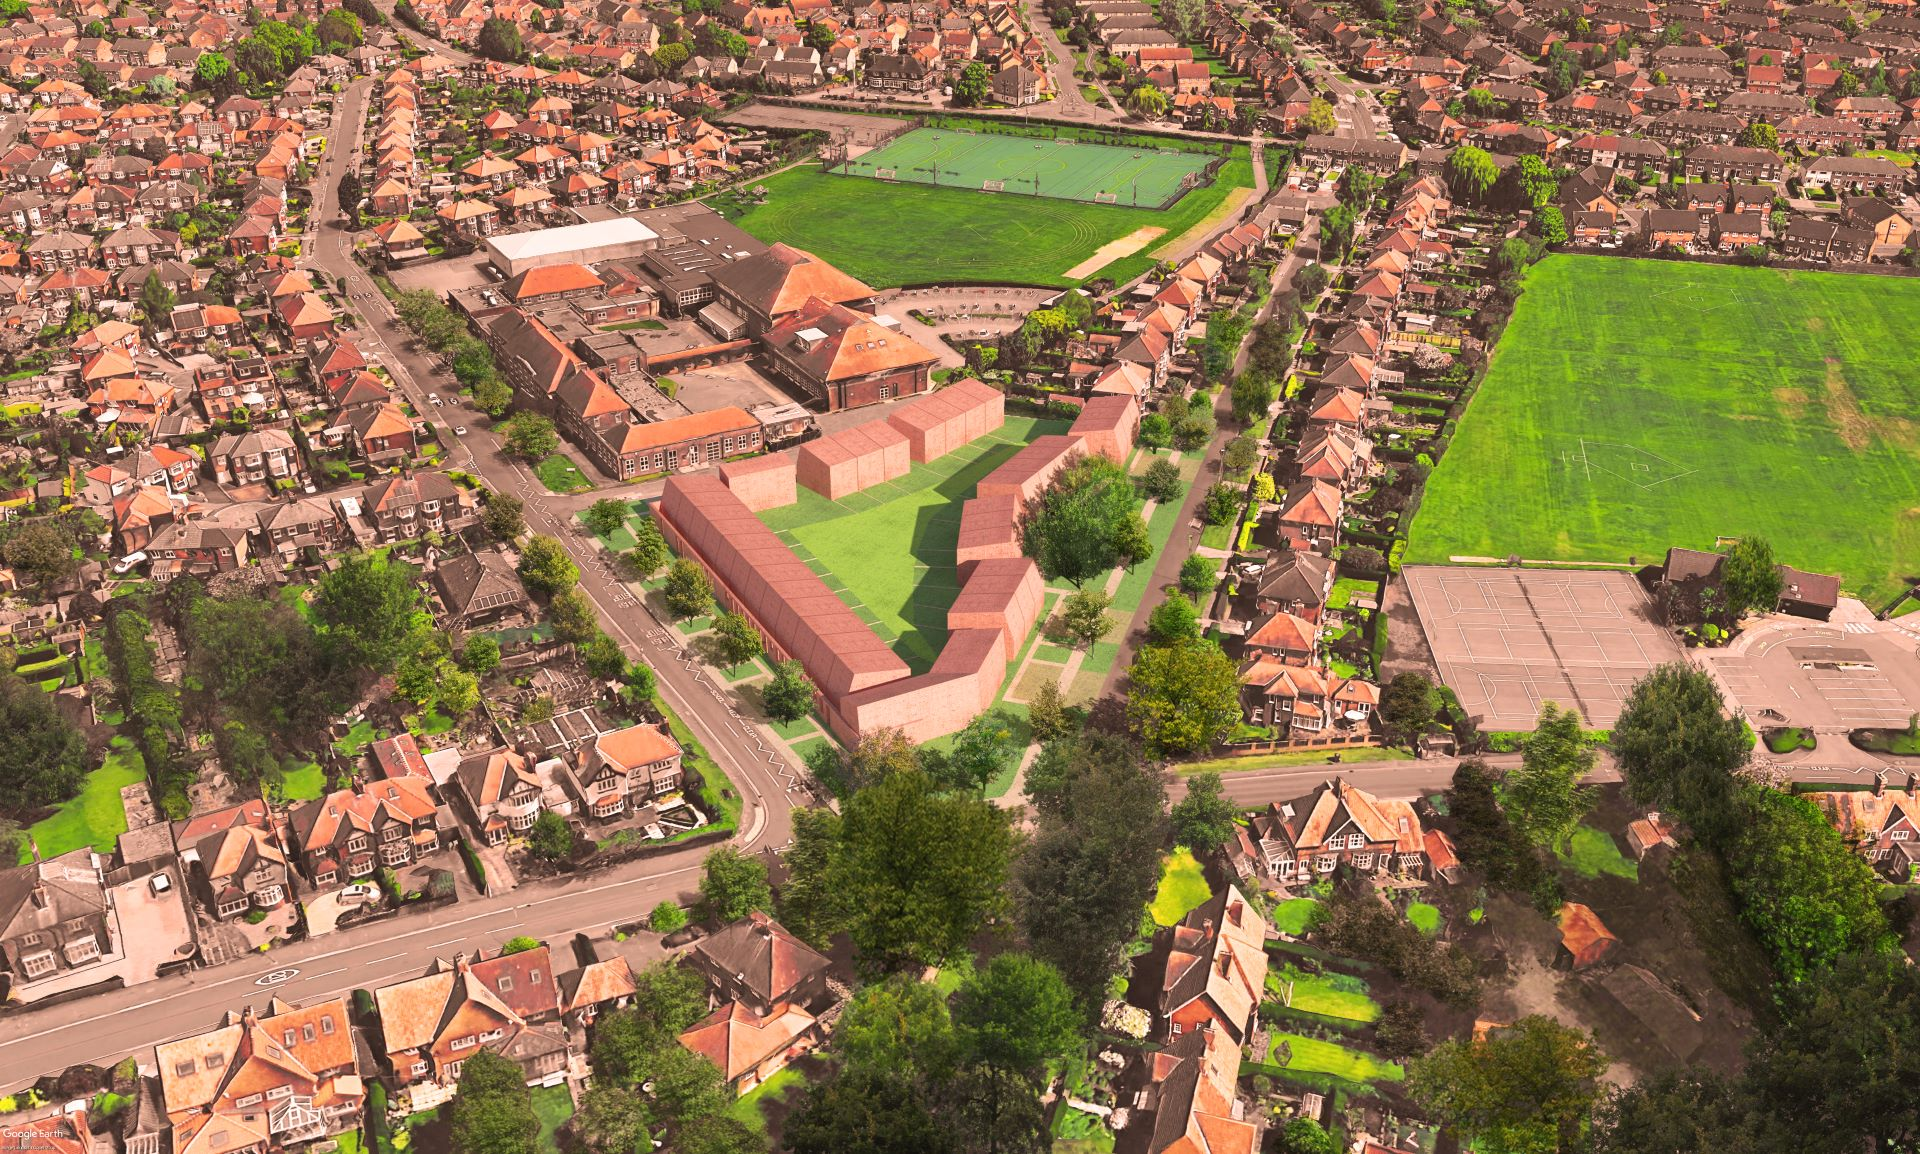 An aerial view of a sustainable housing development, with terraces of contemporary homes arranged around a shared green space in the centre.